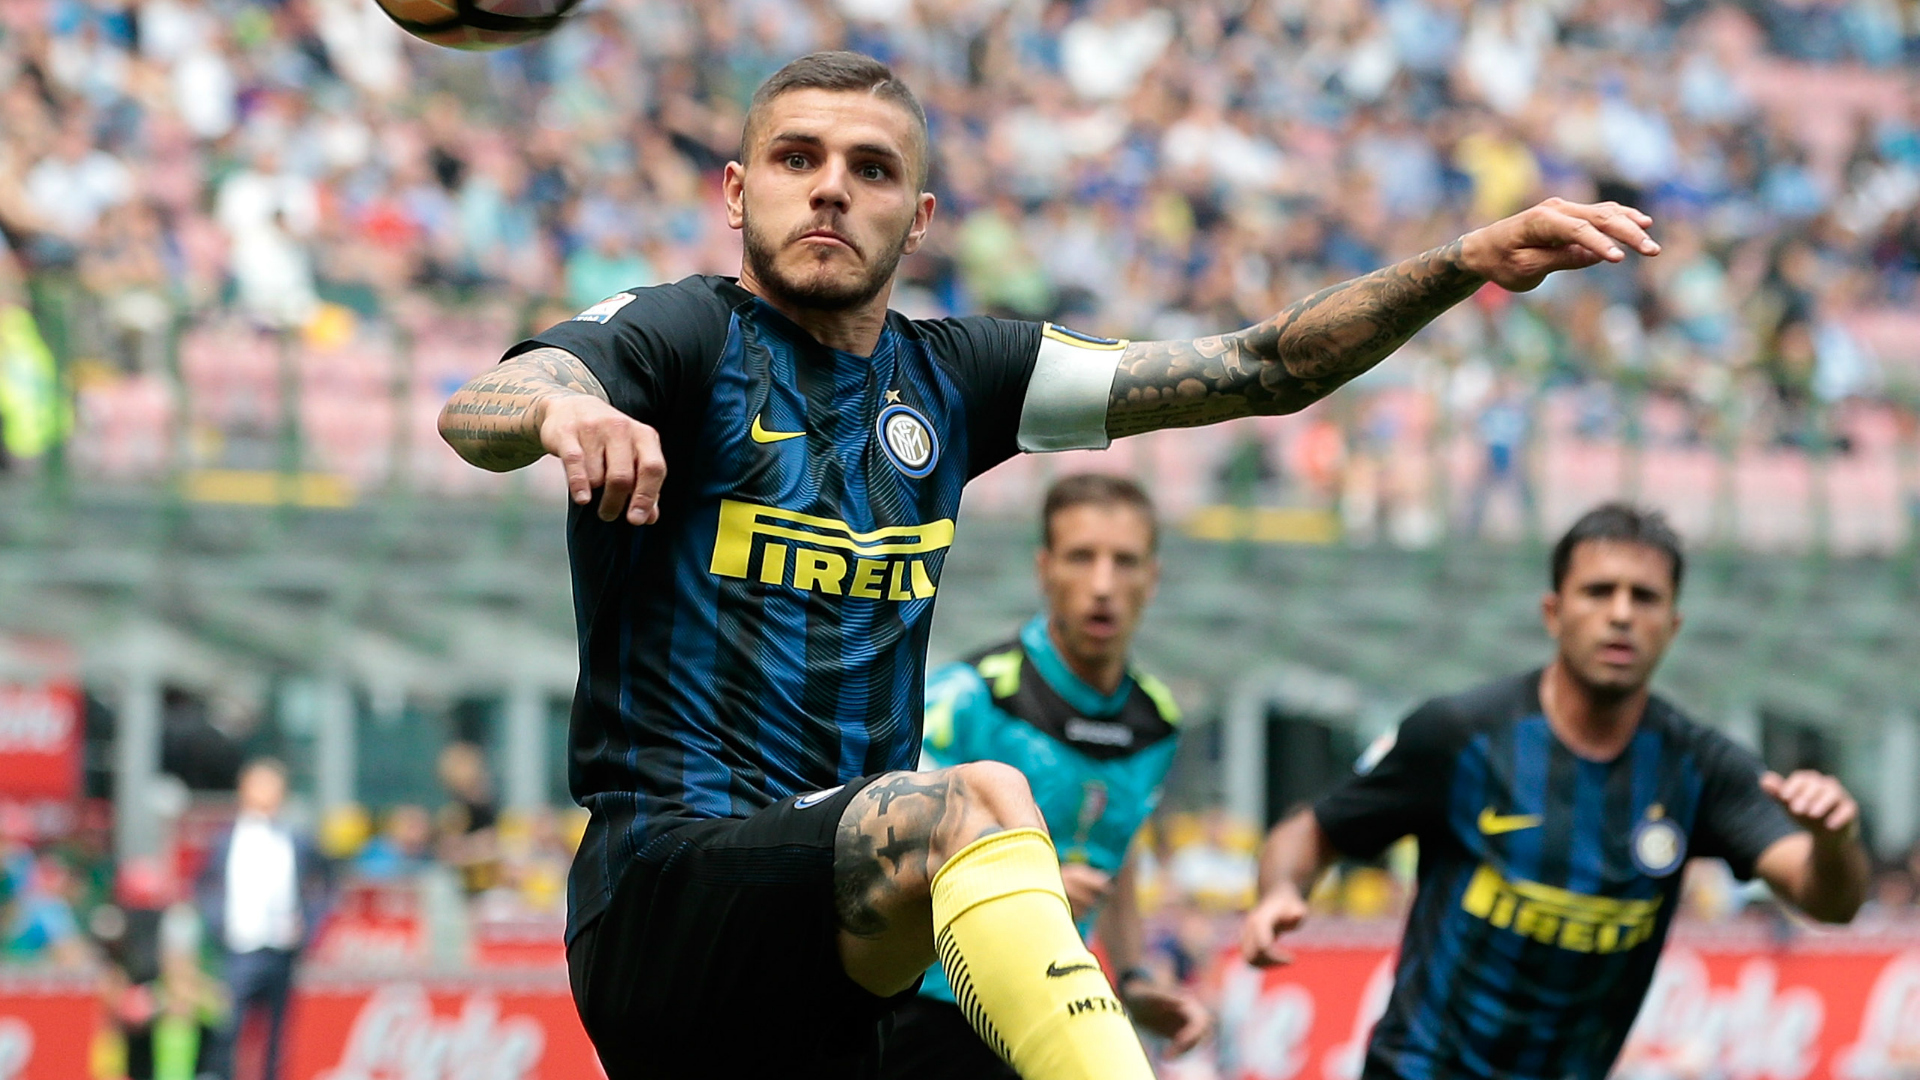 Inter news: brutto infortunio per Icardi, i dettagli